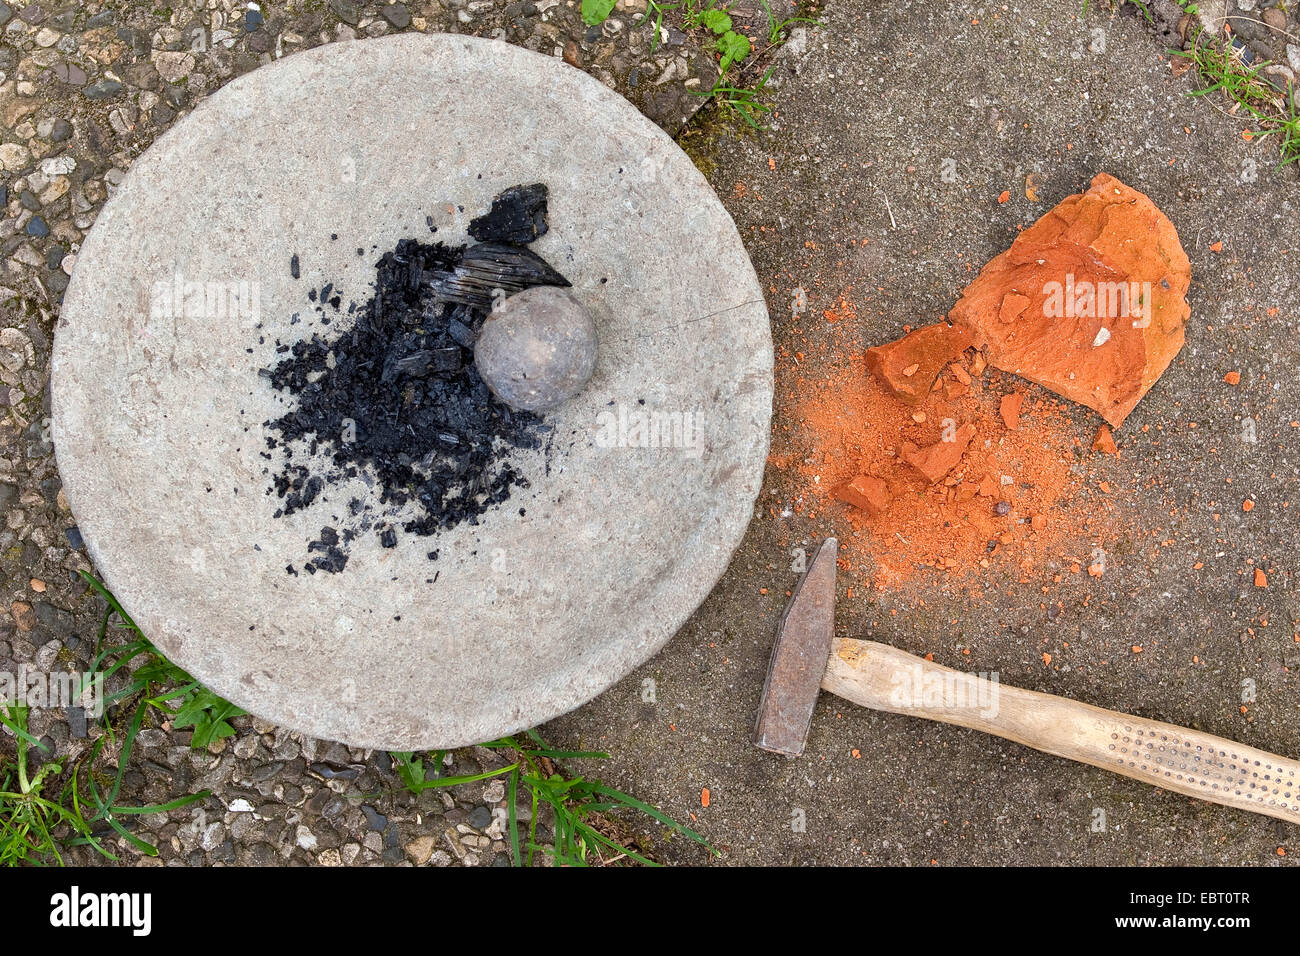 grinding charcoal and crushing red sandstone to paint with earth colour, Germany - Stock Image